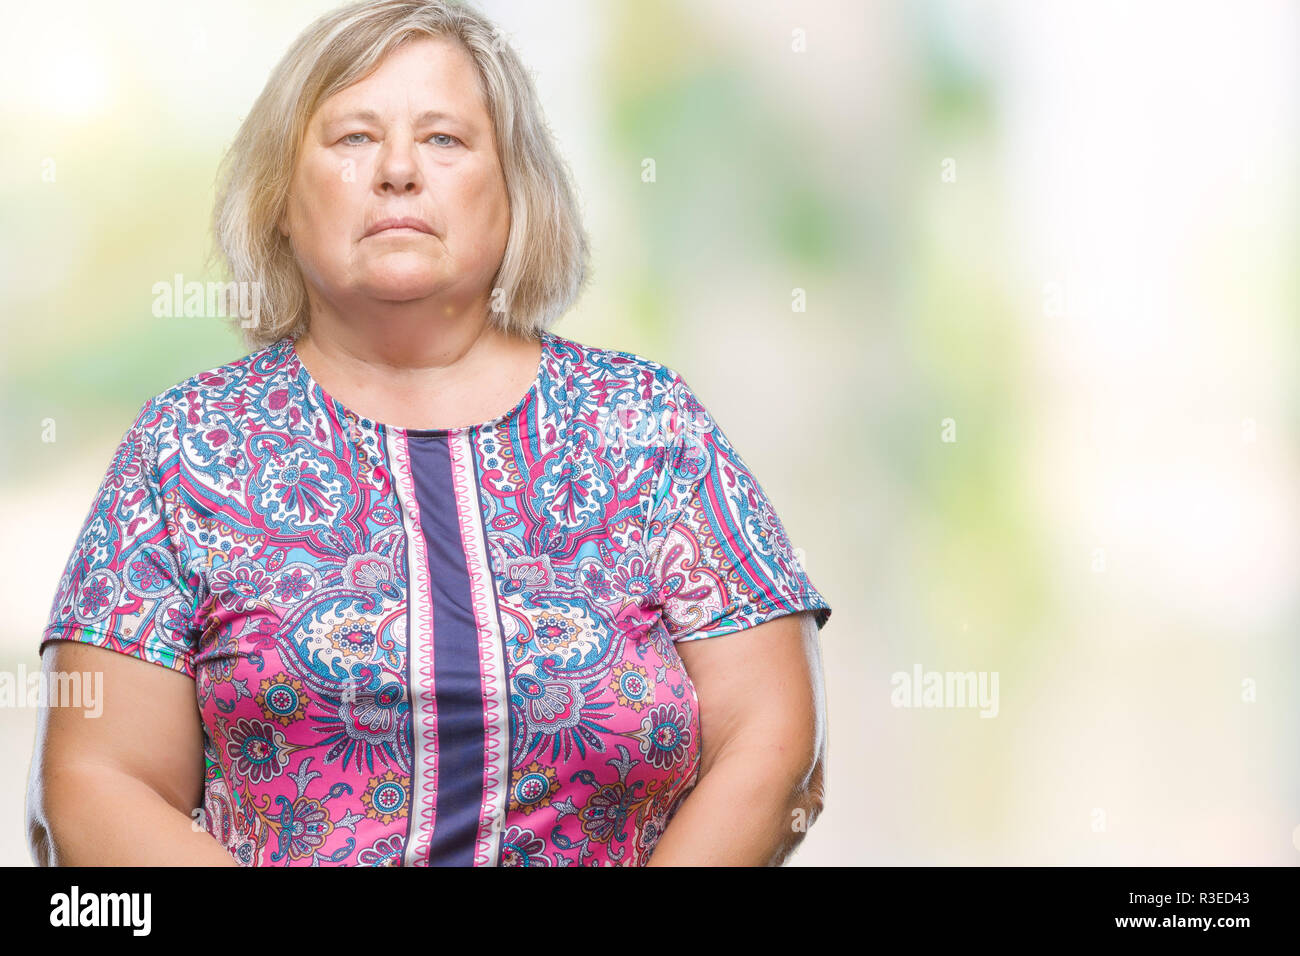 Senior plus size caucasian woman over isolated background with serious expression on face. Simple and natural looking at the camera. - Stock Image